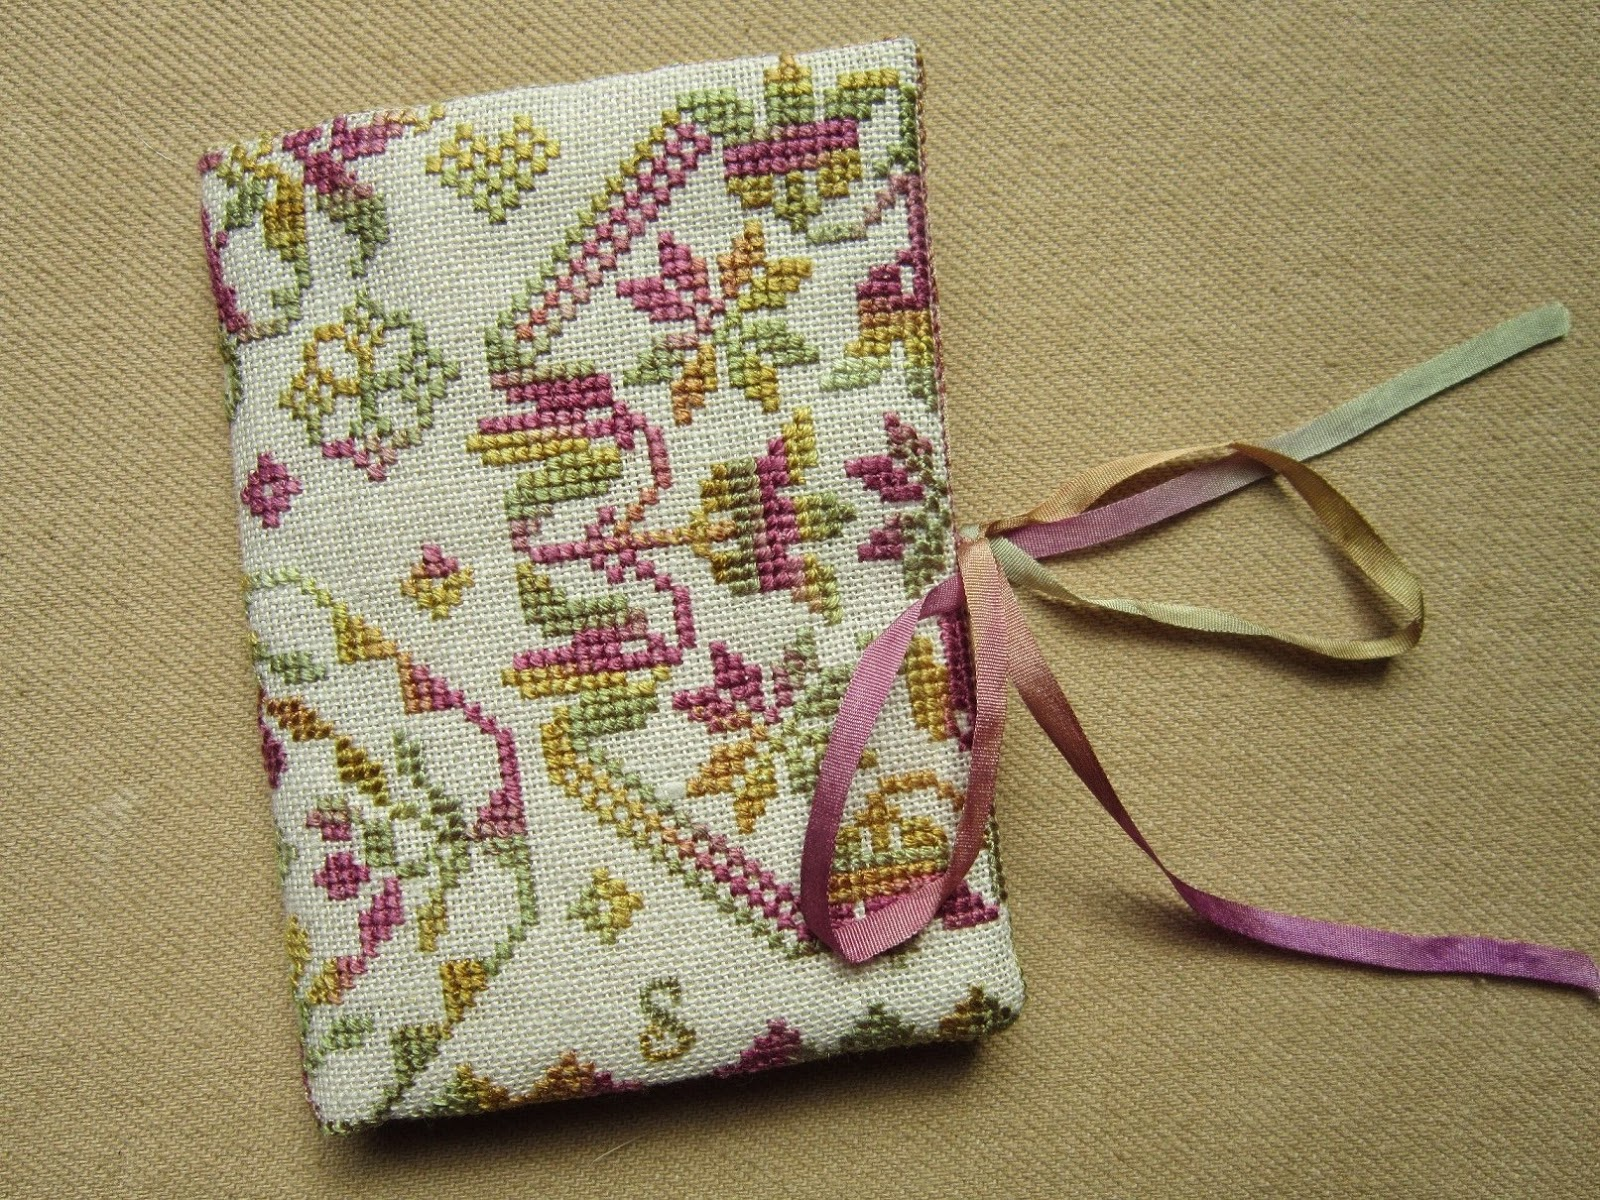 accesorios costura, bordado, punto cruz, broderie, stitching, point croix, cross stitch, funda tijeras, carterita agujas